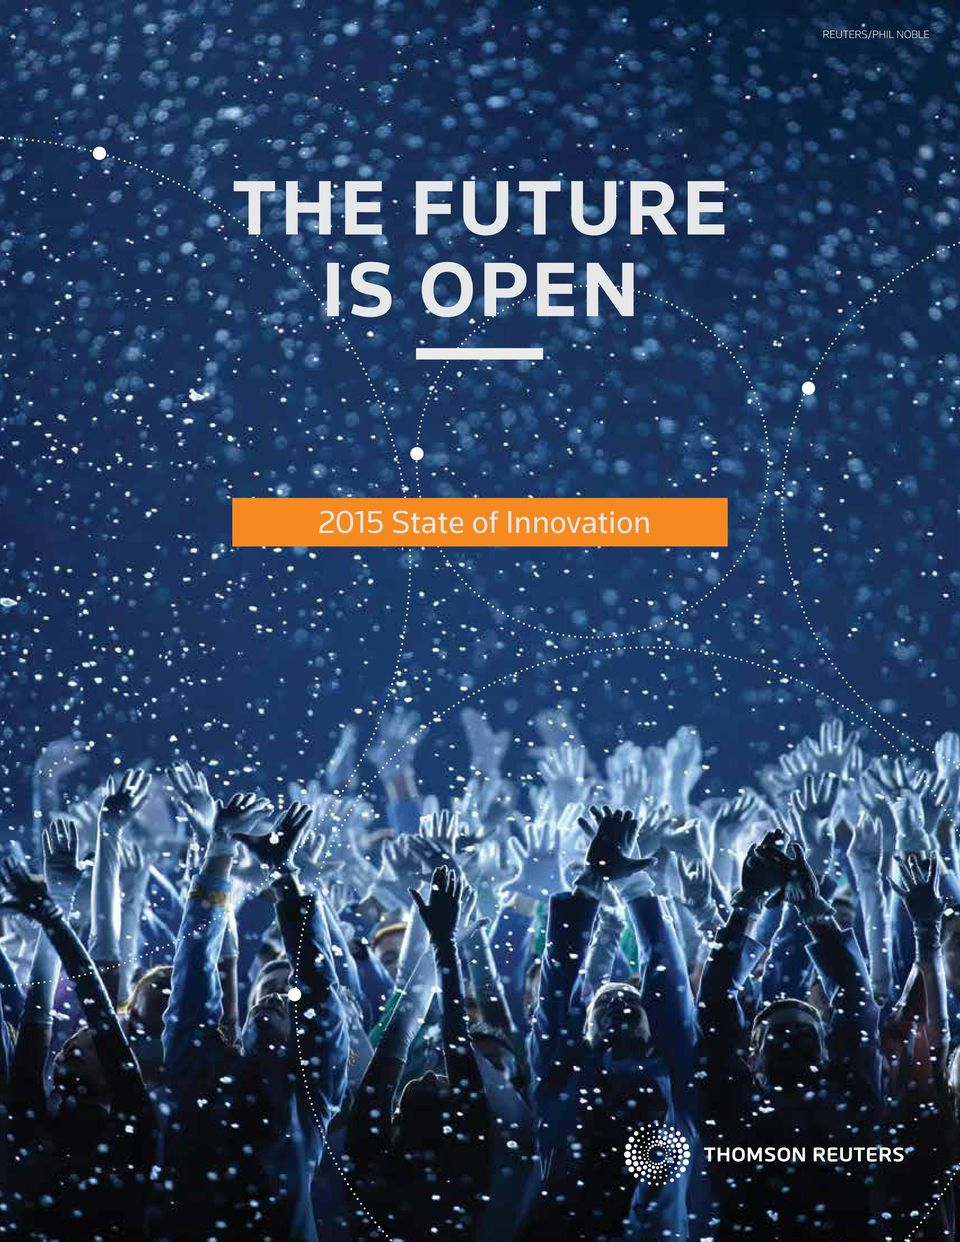 FUTURE IS OPEN